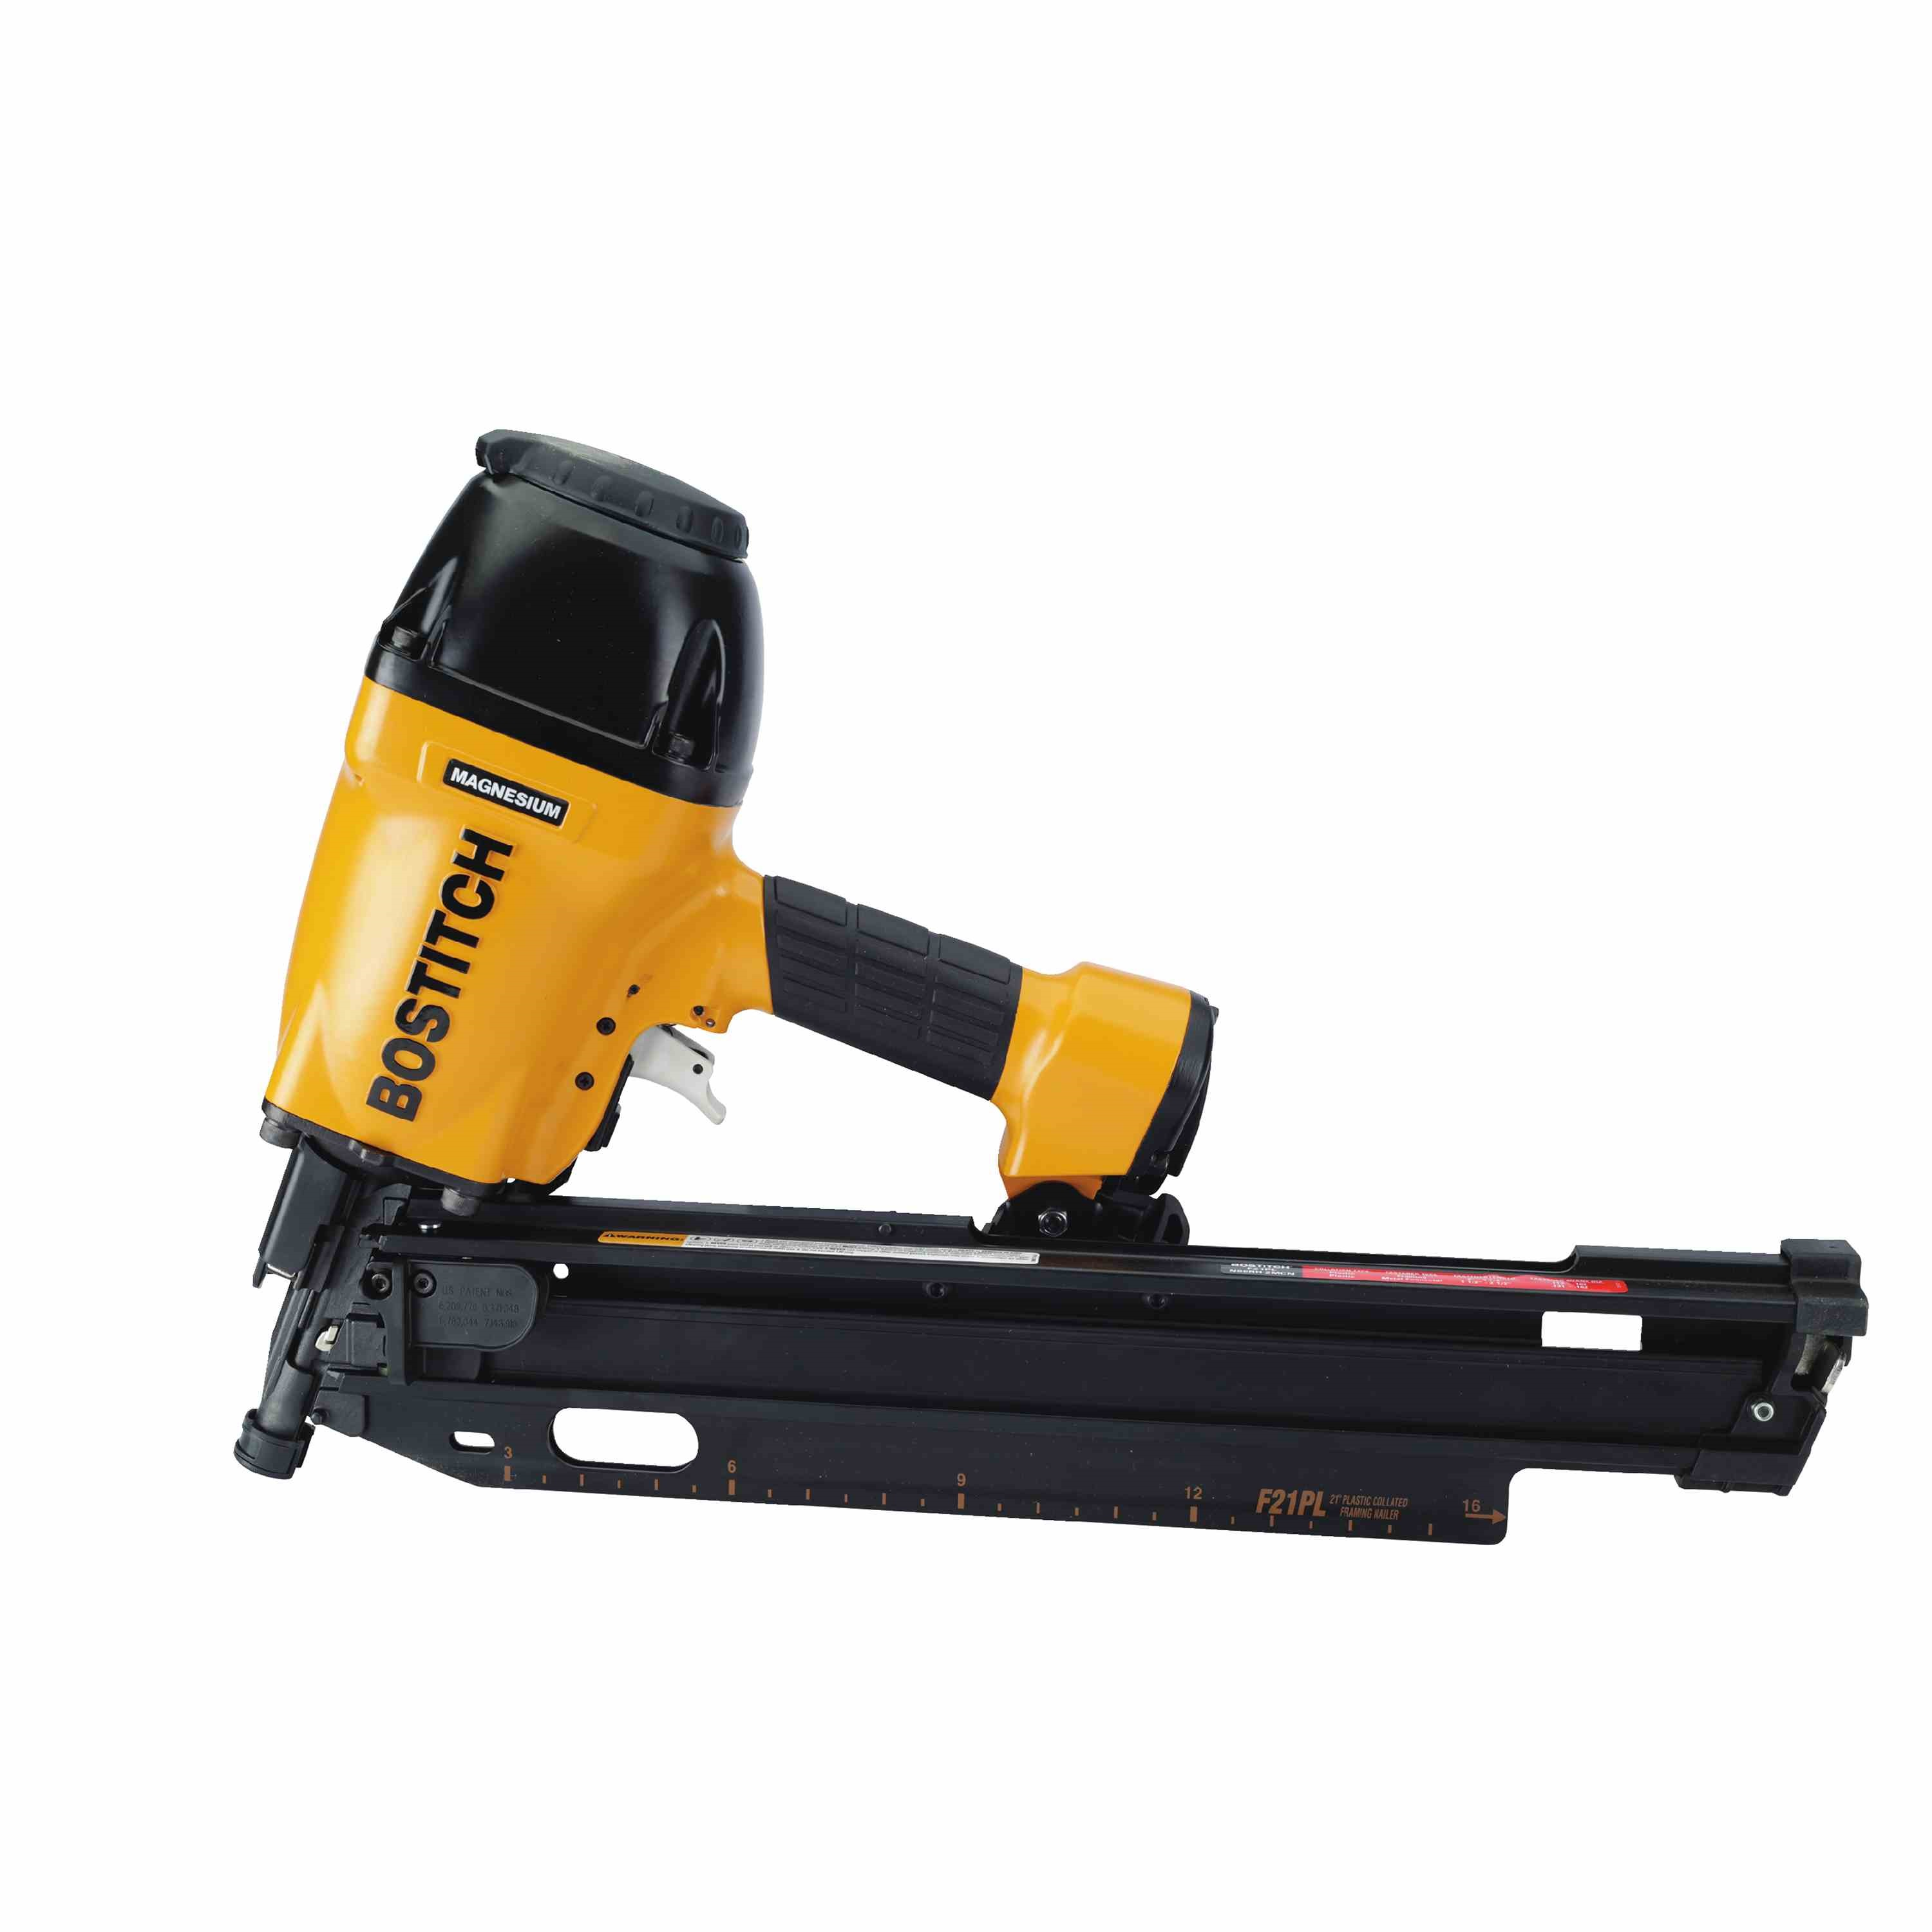 Bostitch - 21176 Plastic Collated Framing Nailer - F21PL2